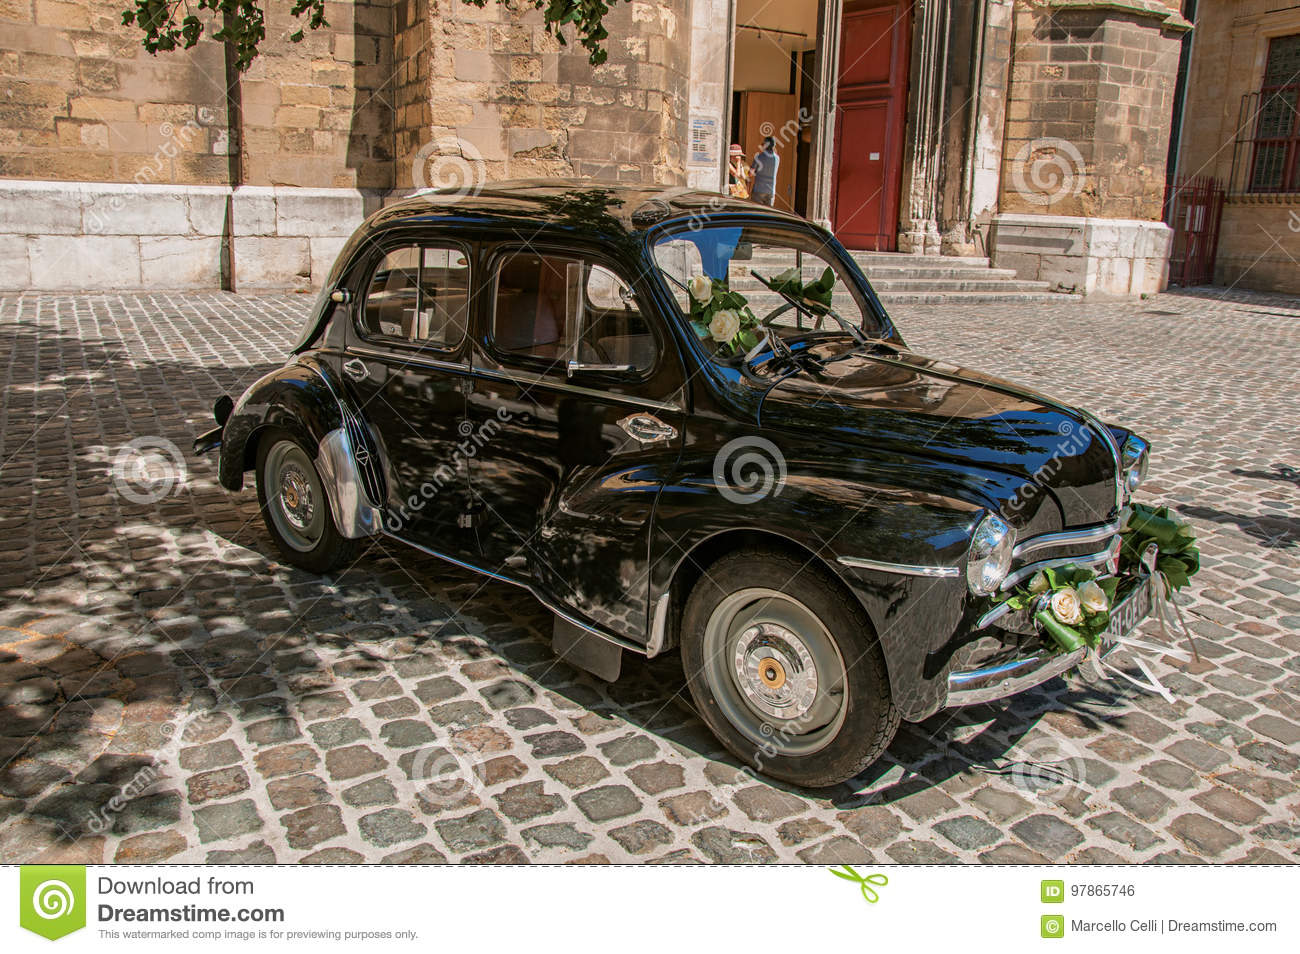 View of old model car for newlyweds in Aix-en-Provence.